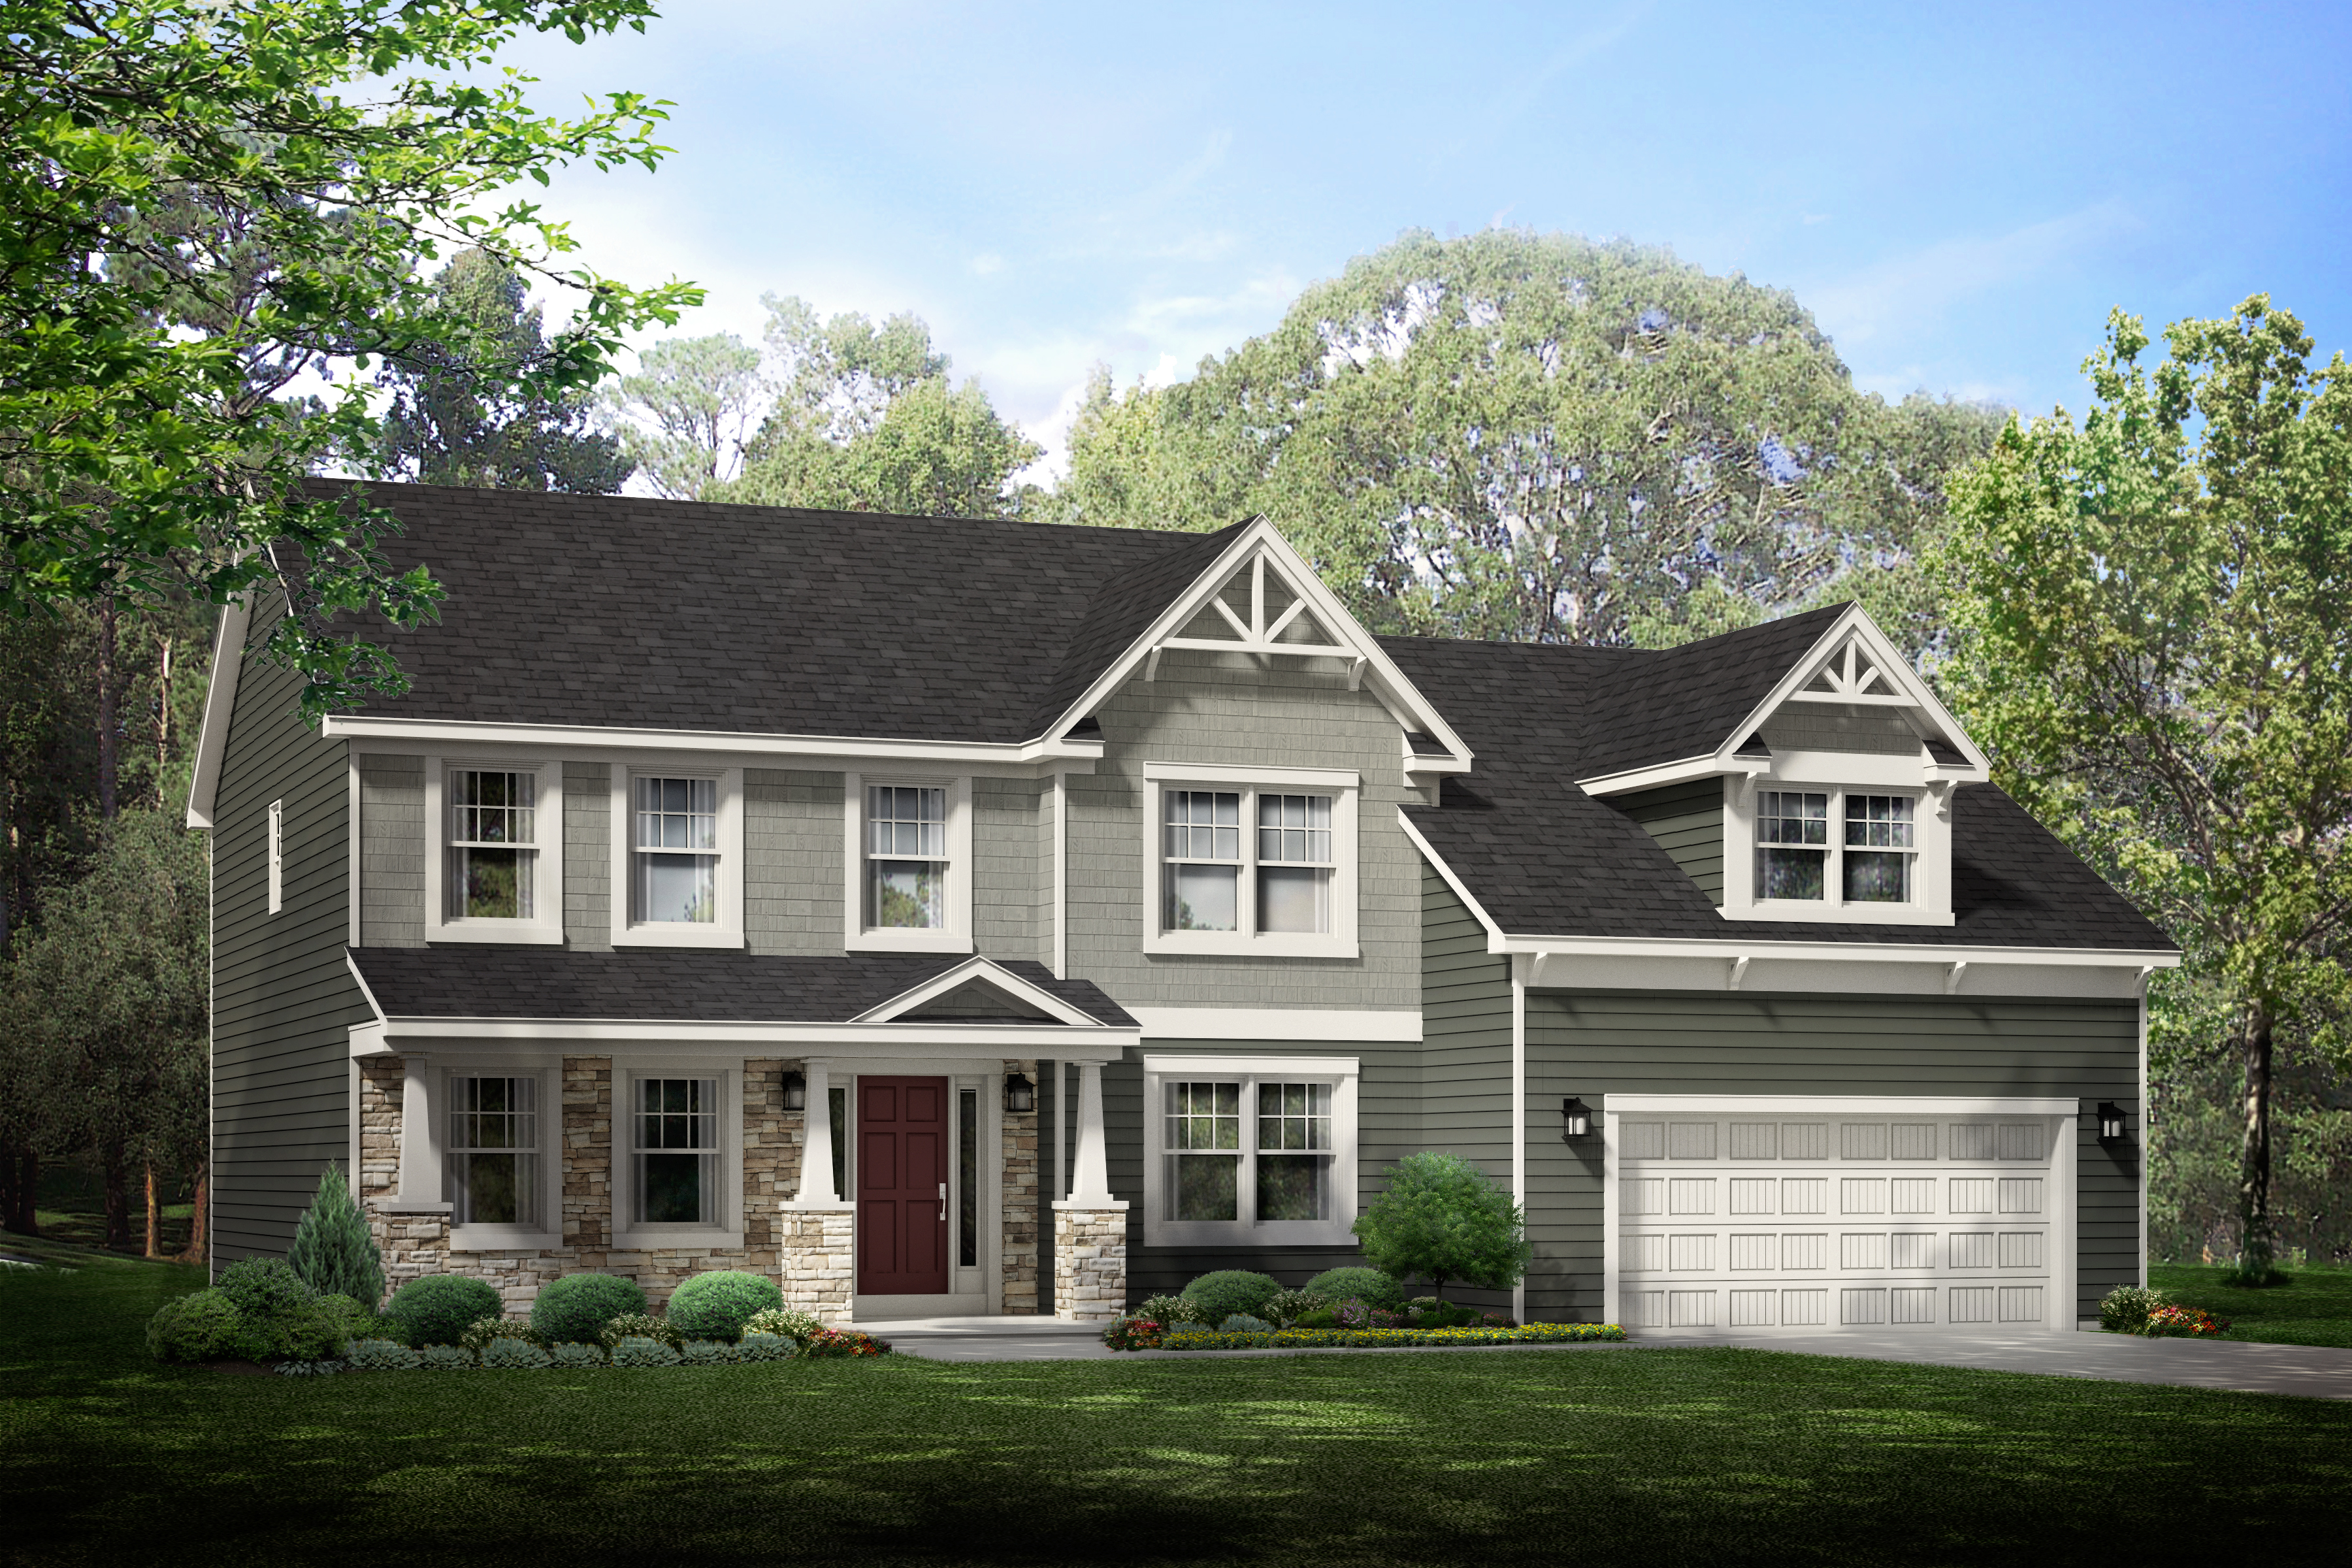 3 New Plans Coming this January to S&A Homes